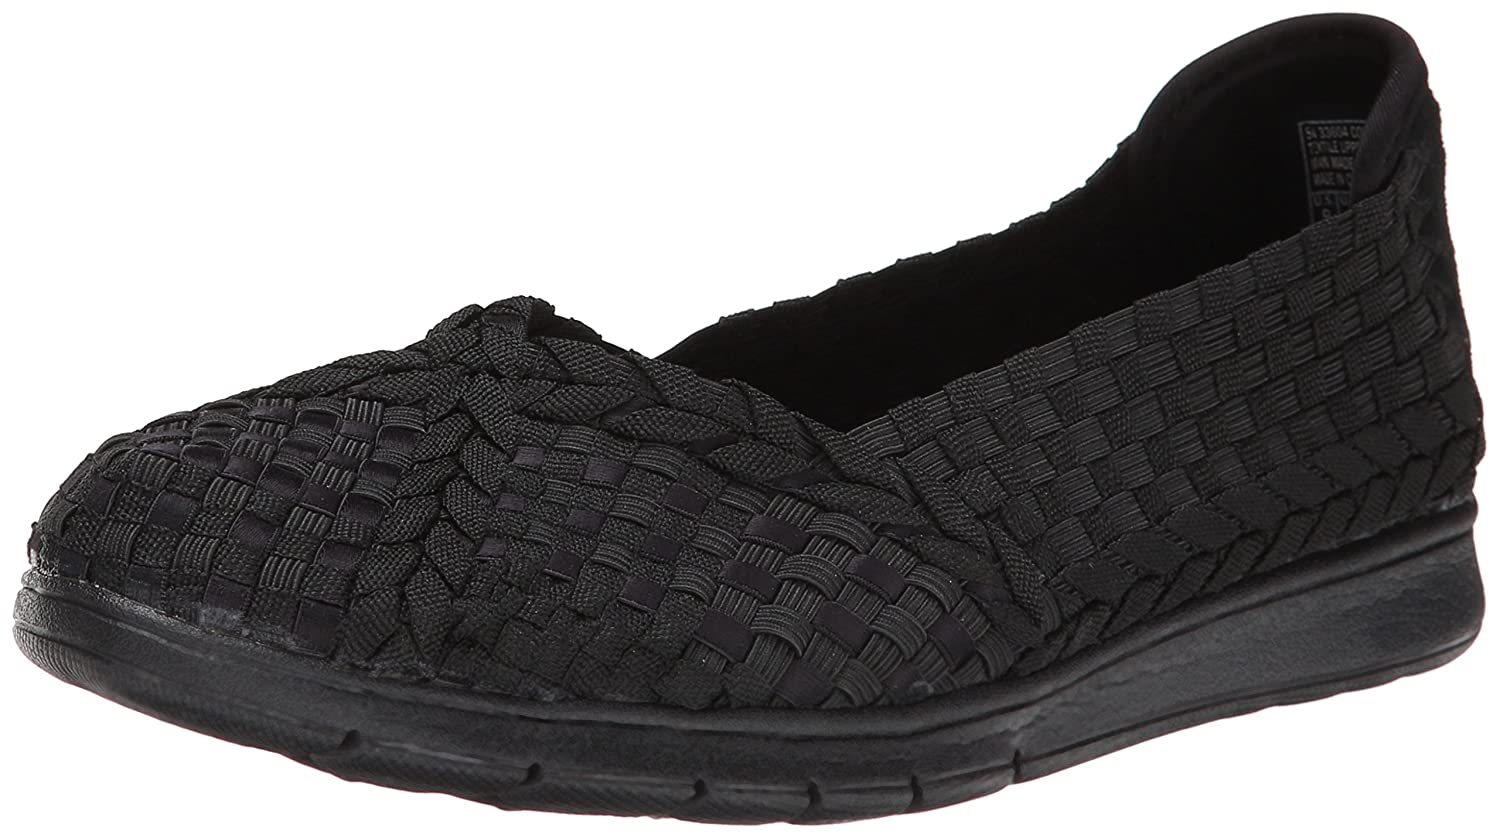 Skechers BOBS from Women's Pureflex Fashion Slip-On Flat B00L32CYIA 5.5 M US|Black/Black